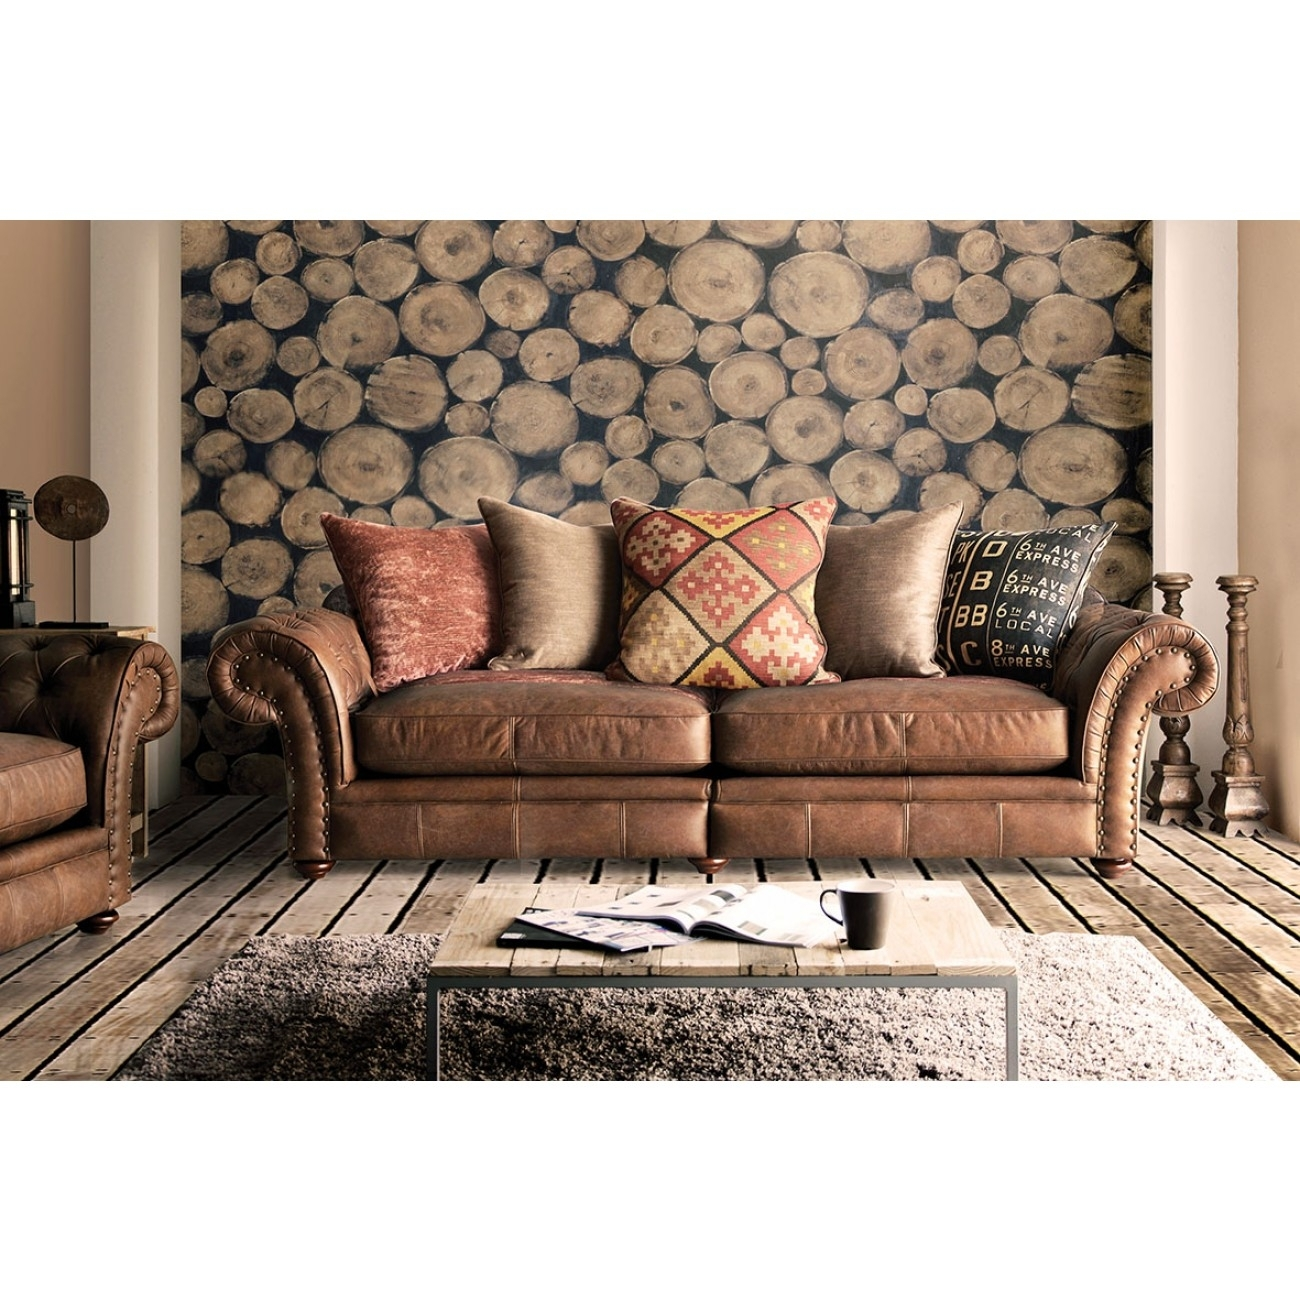 Best Leather And Fabric Sofas 34 Sofa Room Ideas With Leather And Regarding Leather And Cloth Sofas (Image 1 of 10)